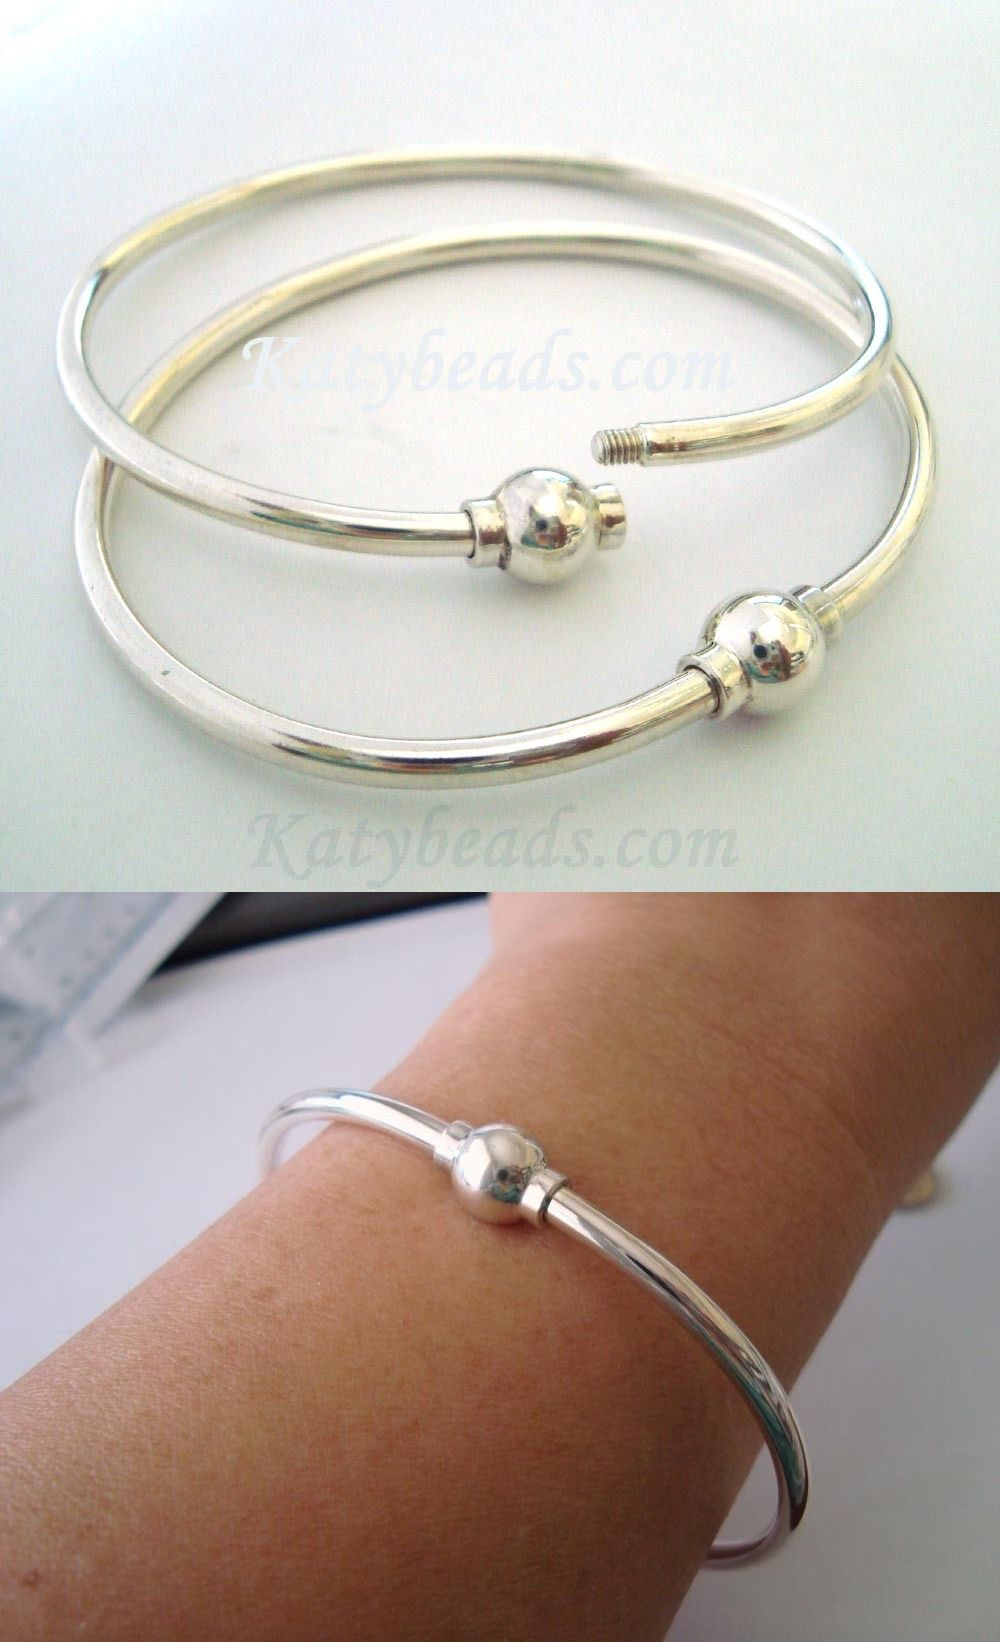 Precious Metal Without Stones 164313: 7 925 Plain Sterling Silver Charm  Bangle Screw Ball Clasp